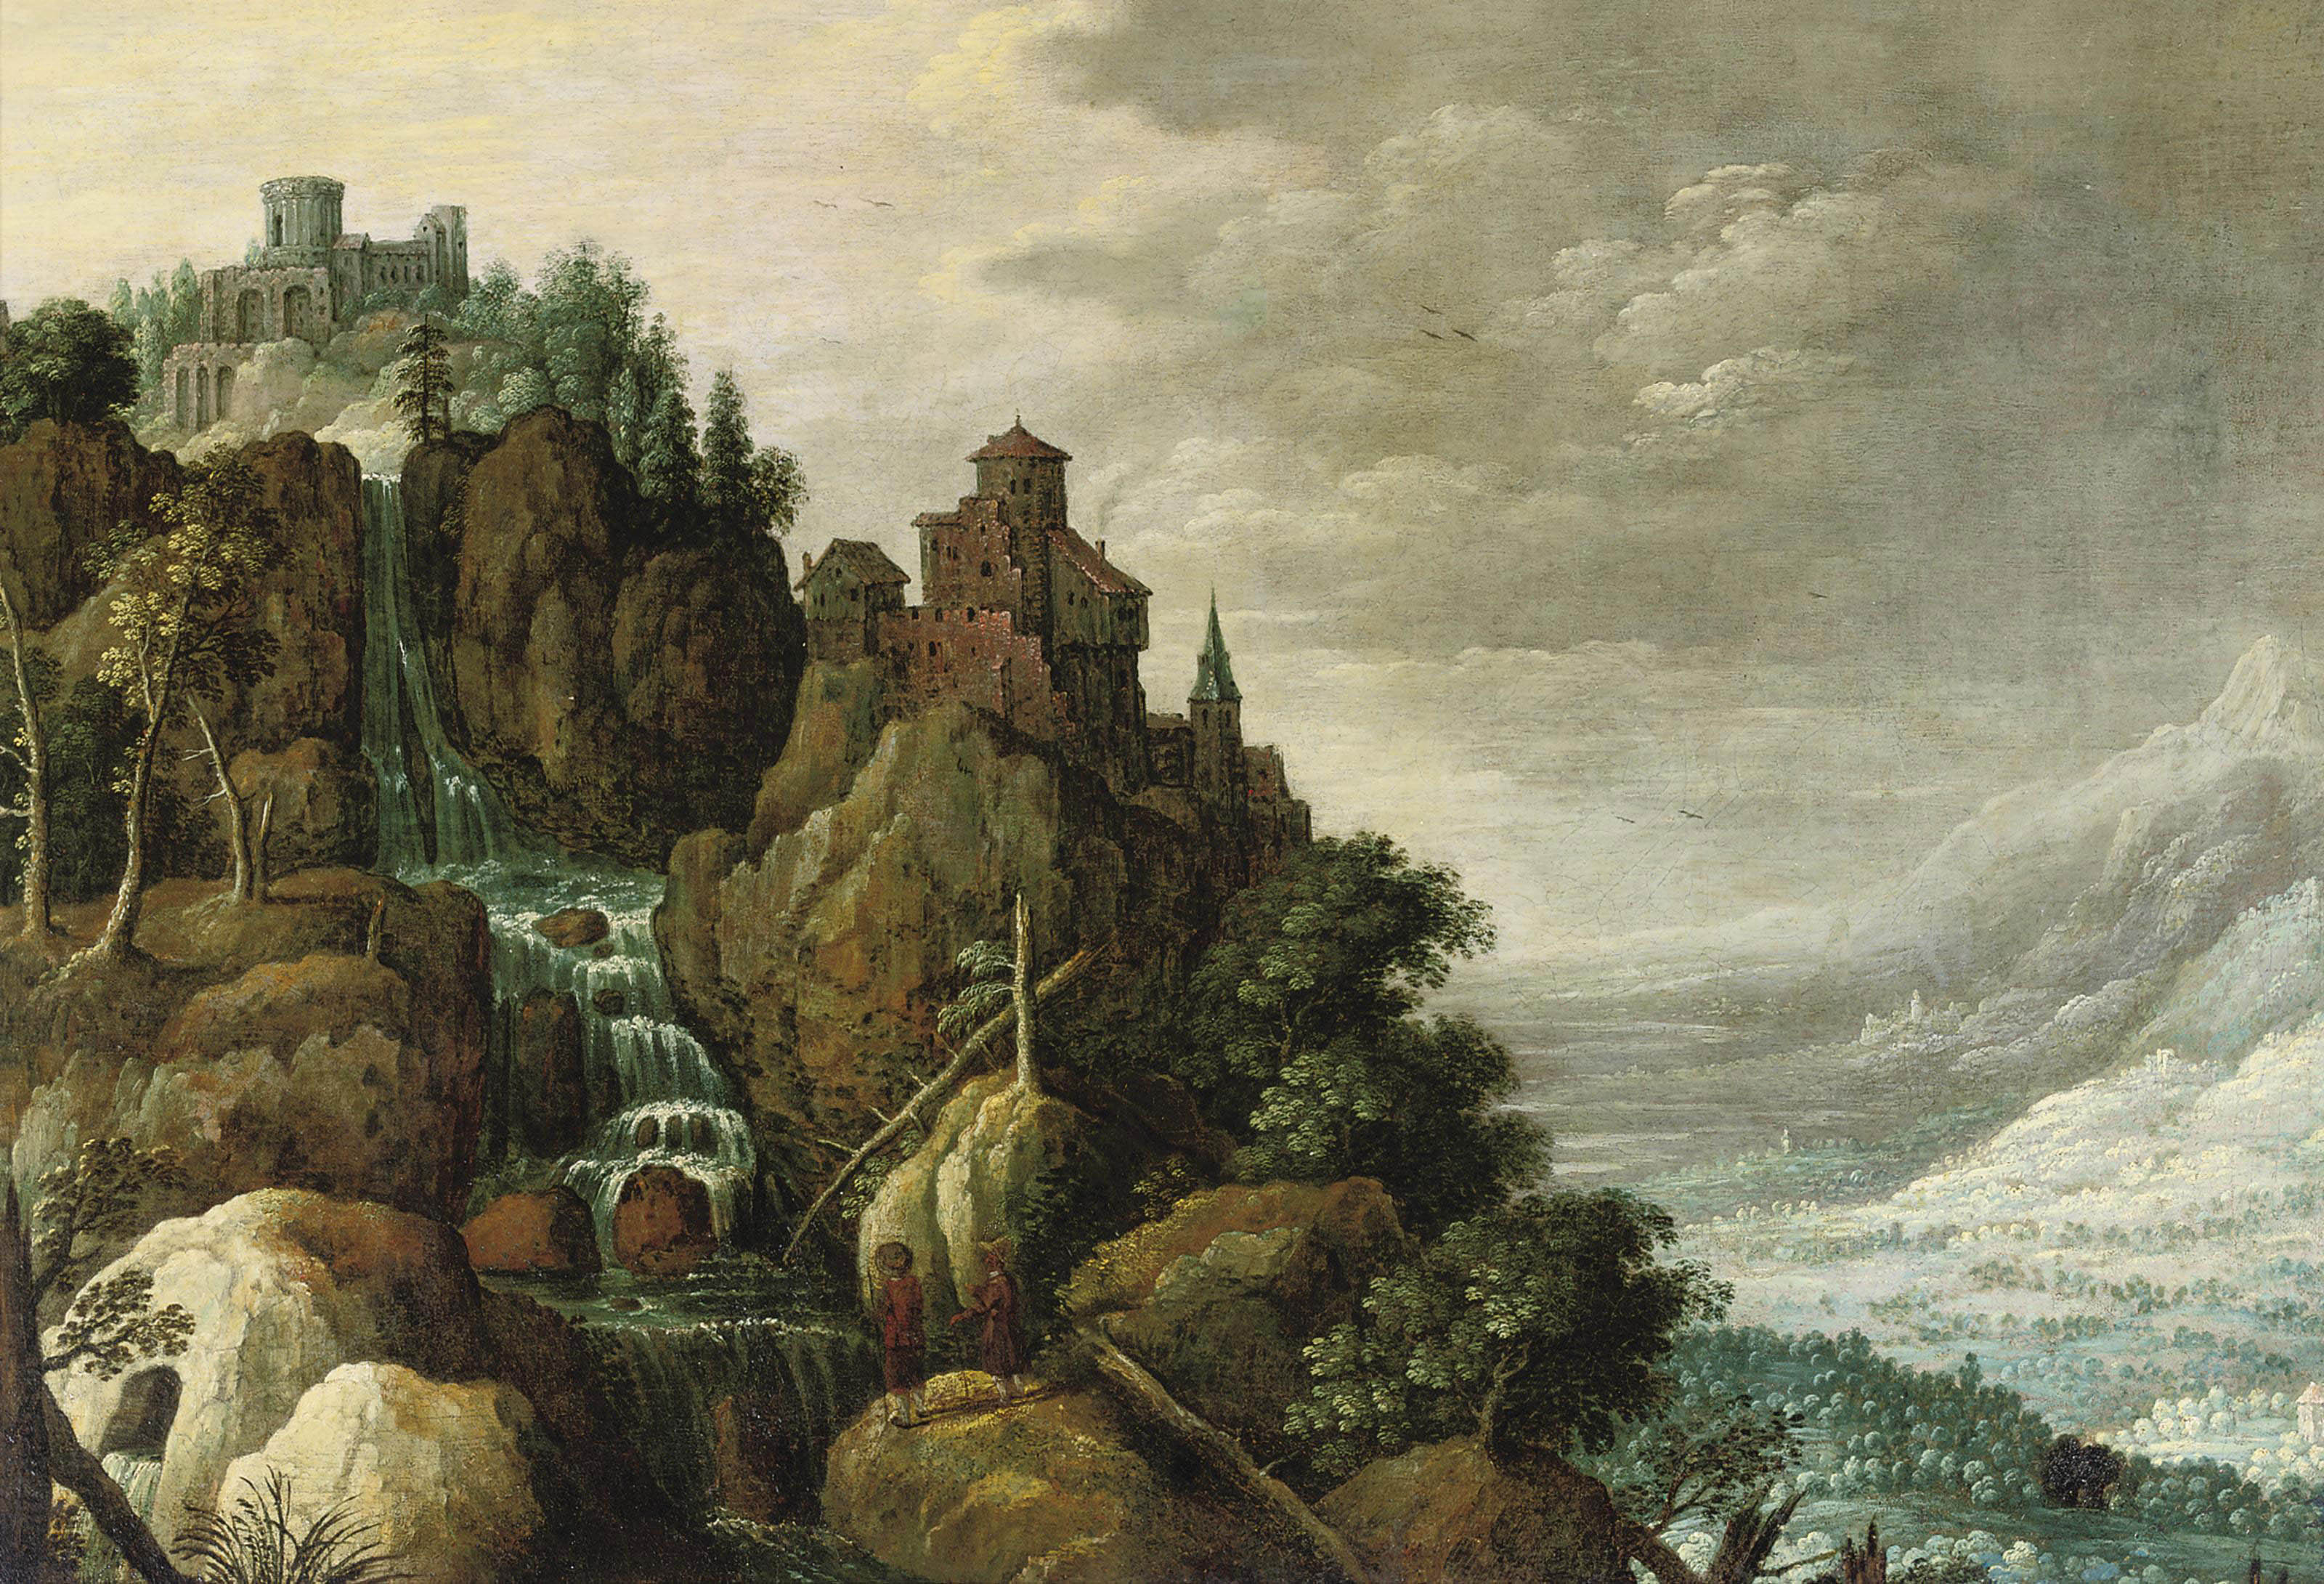 A mountainous landscape with a waterfall and a fortification on the rocks, figures conversing in the foreground